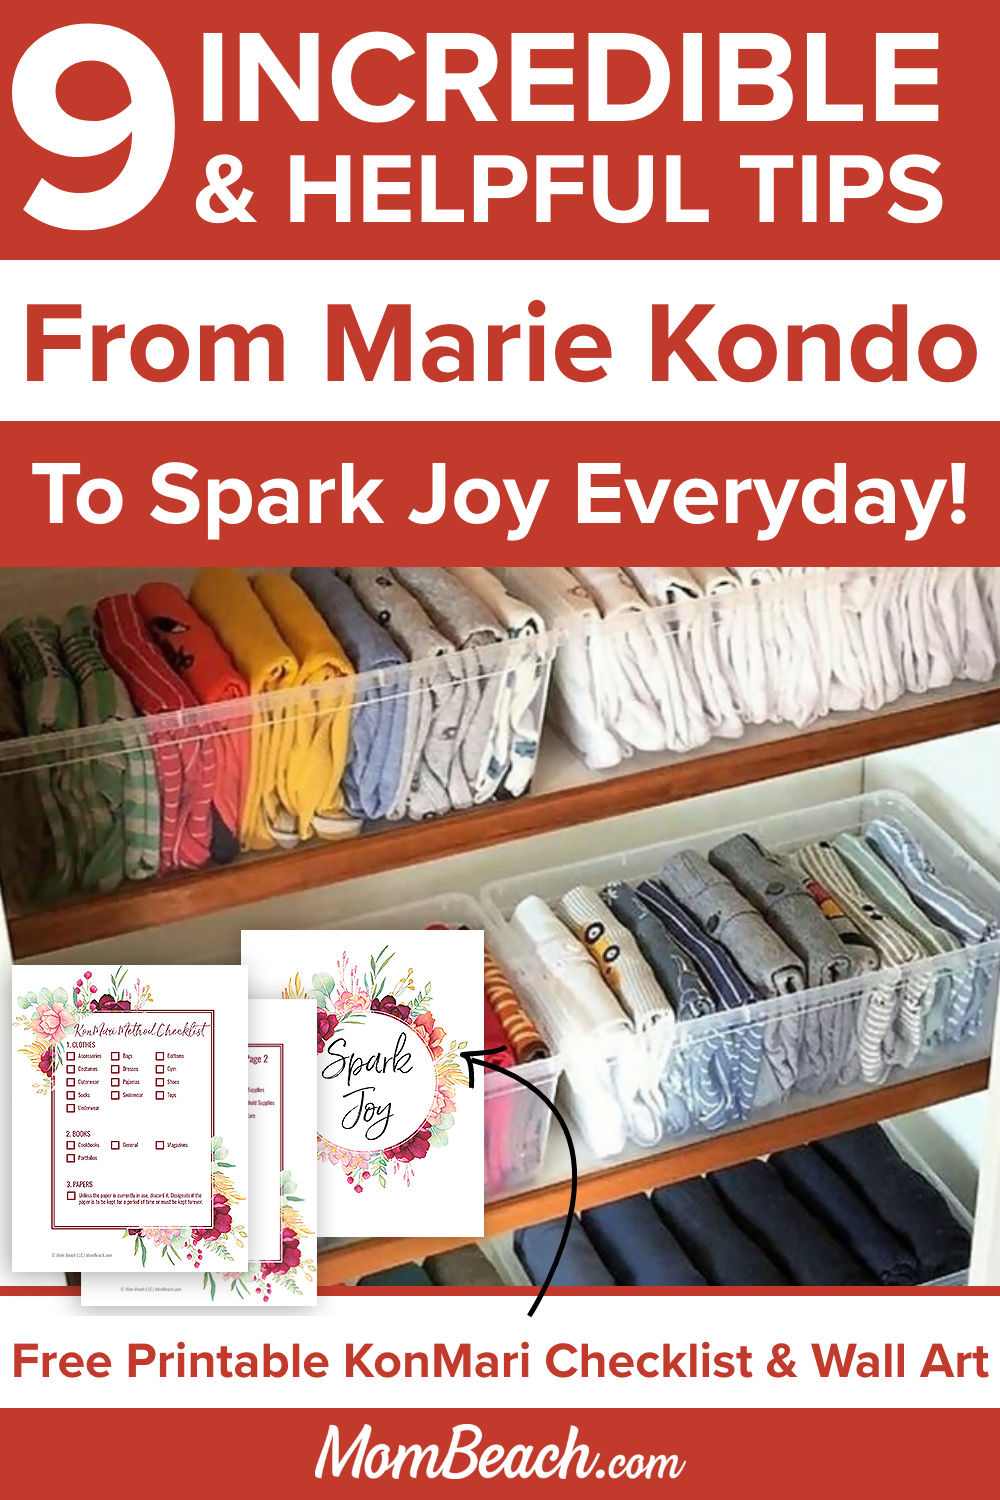 Marie Kondo is taking the organization world by storm with her famous KonMari method of folding clothes. Included in this article is a KonMari method checklist and wall art. Kondo asks each item if it sparks joy and if it doesn't, she declutters it. Organizing has never been so much fun with the KonMari method. You can get your kitchen, closet, bathroom, and more organized fast with her tips. #konmarimethodchecklist #konmarimethod #mariekondo #organizing #sparkjoy #mariekondofolding